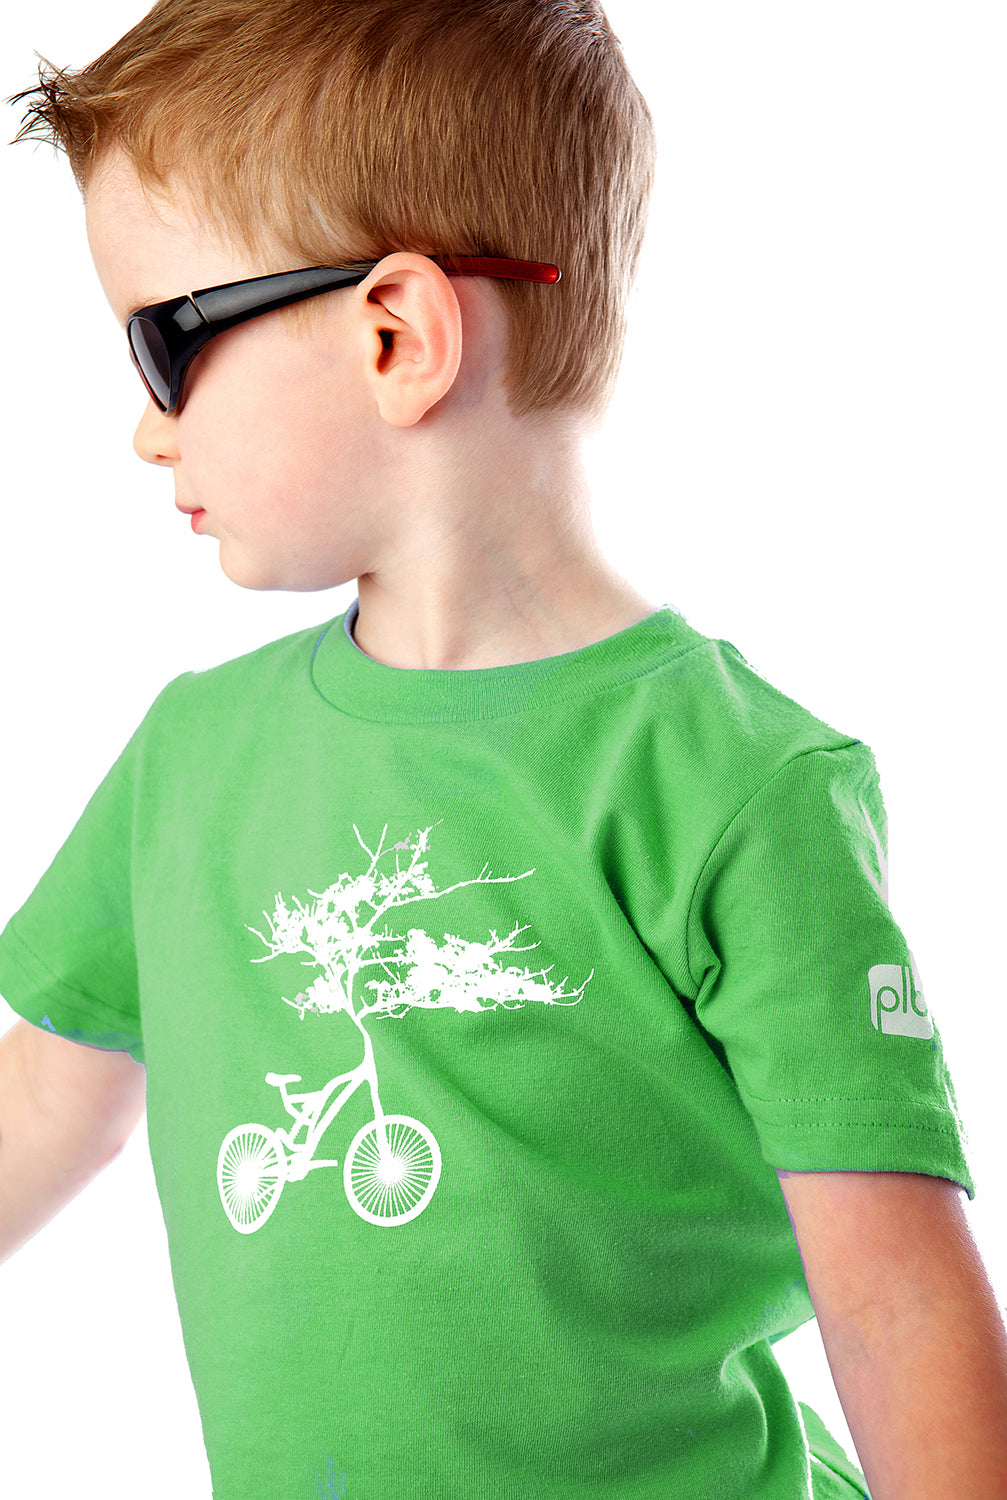 Kids Tree cycle T-shirt